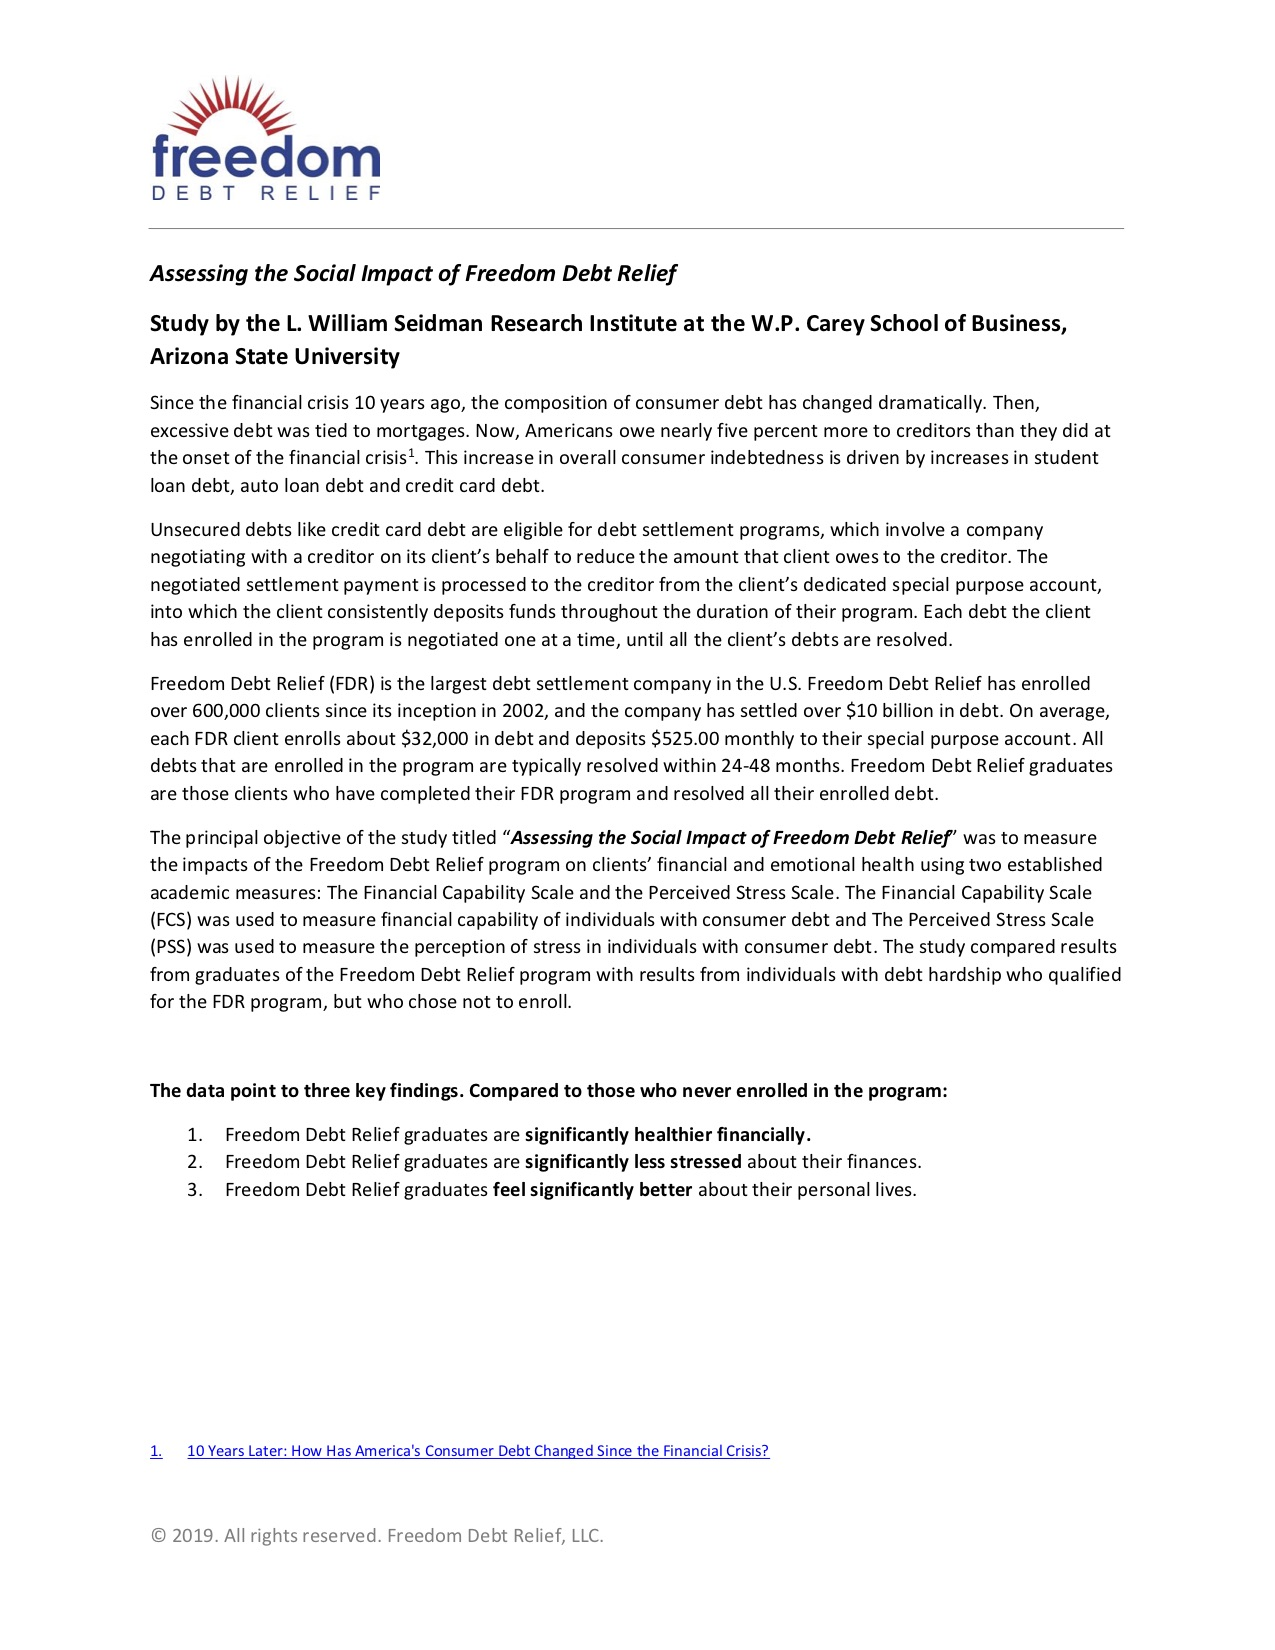 Executive Summary – Assessing the Social Impact of Freedom Debt Relief